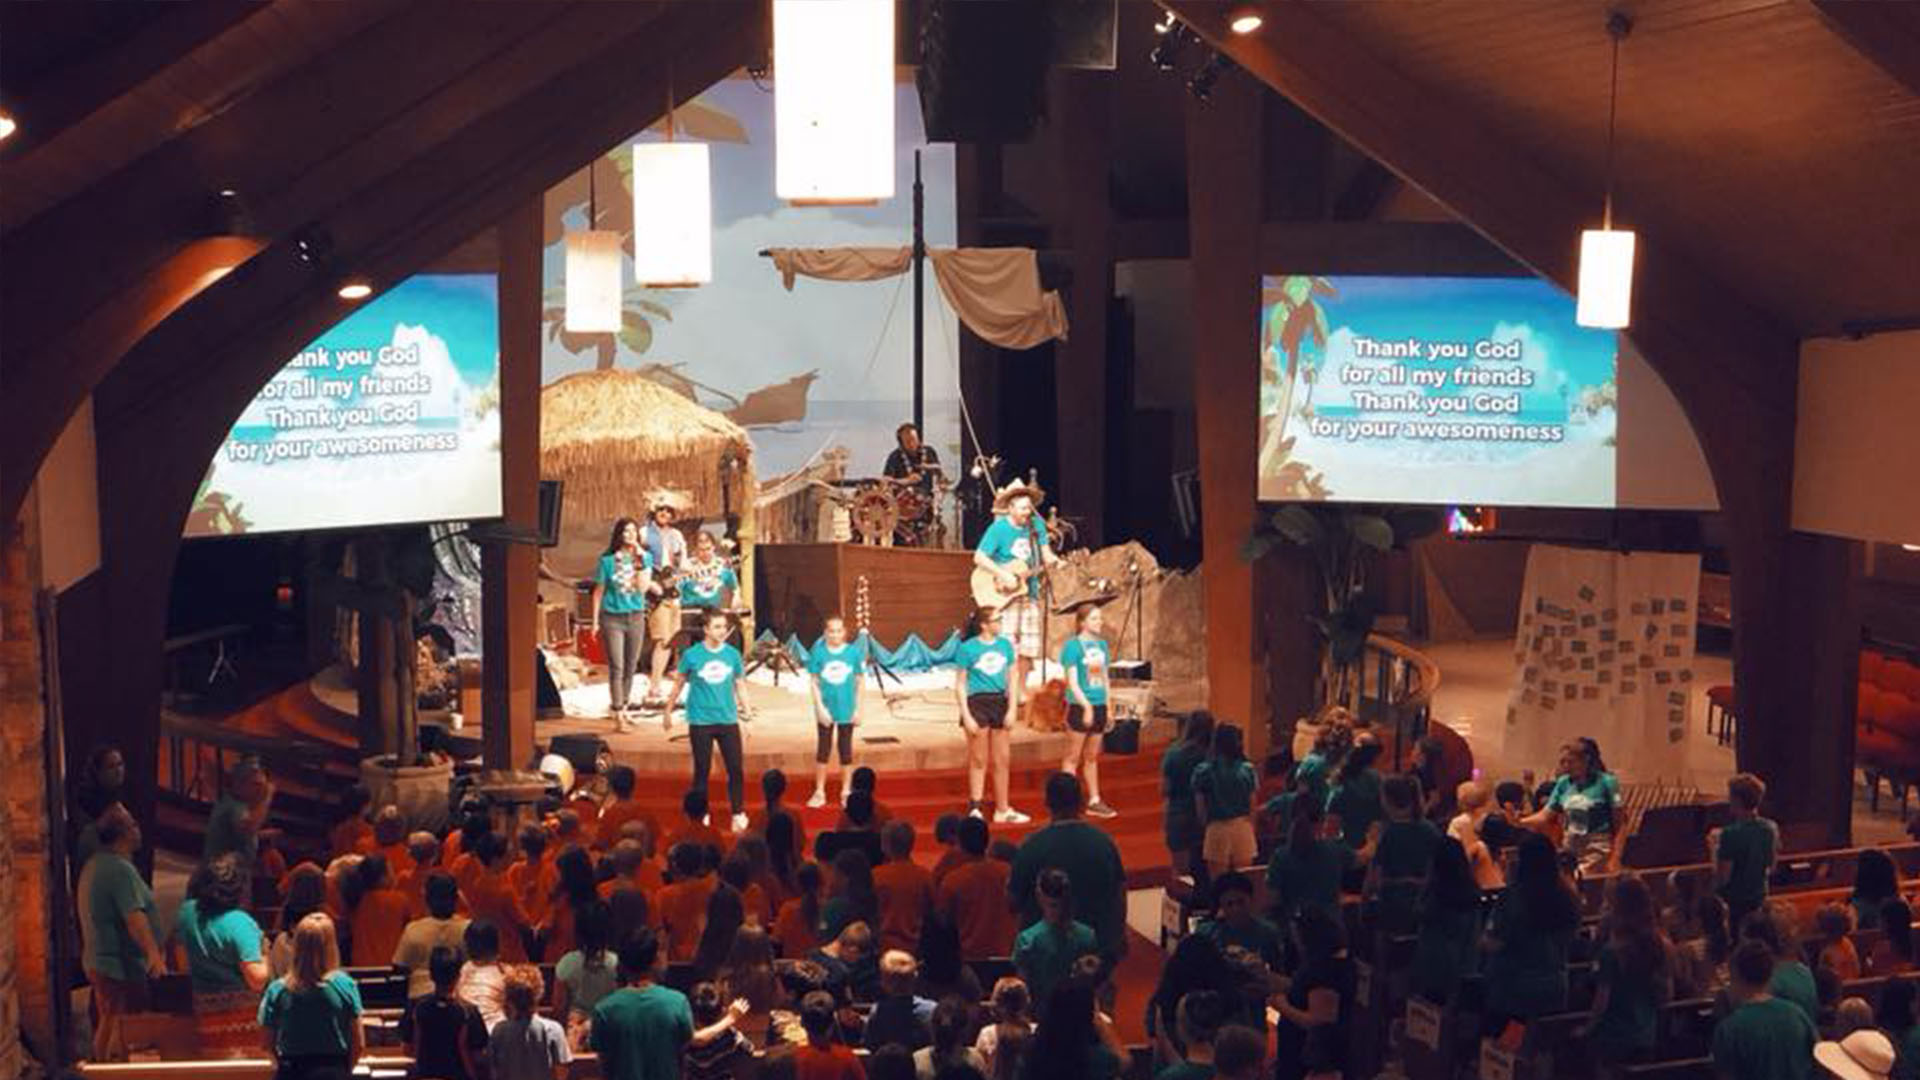 Engage the Mission - VBS is an all-encompassing week here at Redeemer for our entire community. This year VBS is all about an epic African adventure that will engage the whole herd. Are you and your family ready for the adventure?